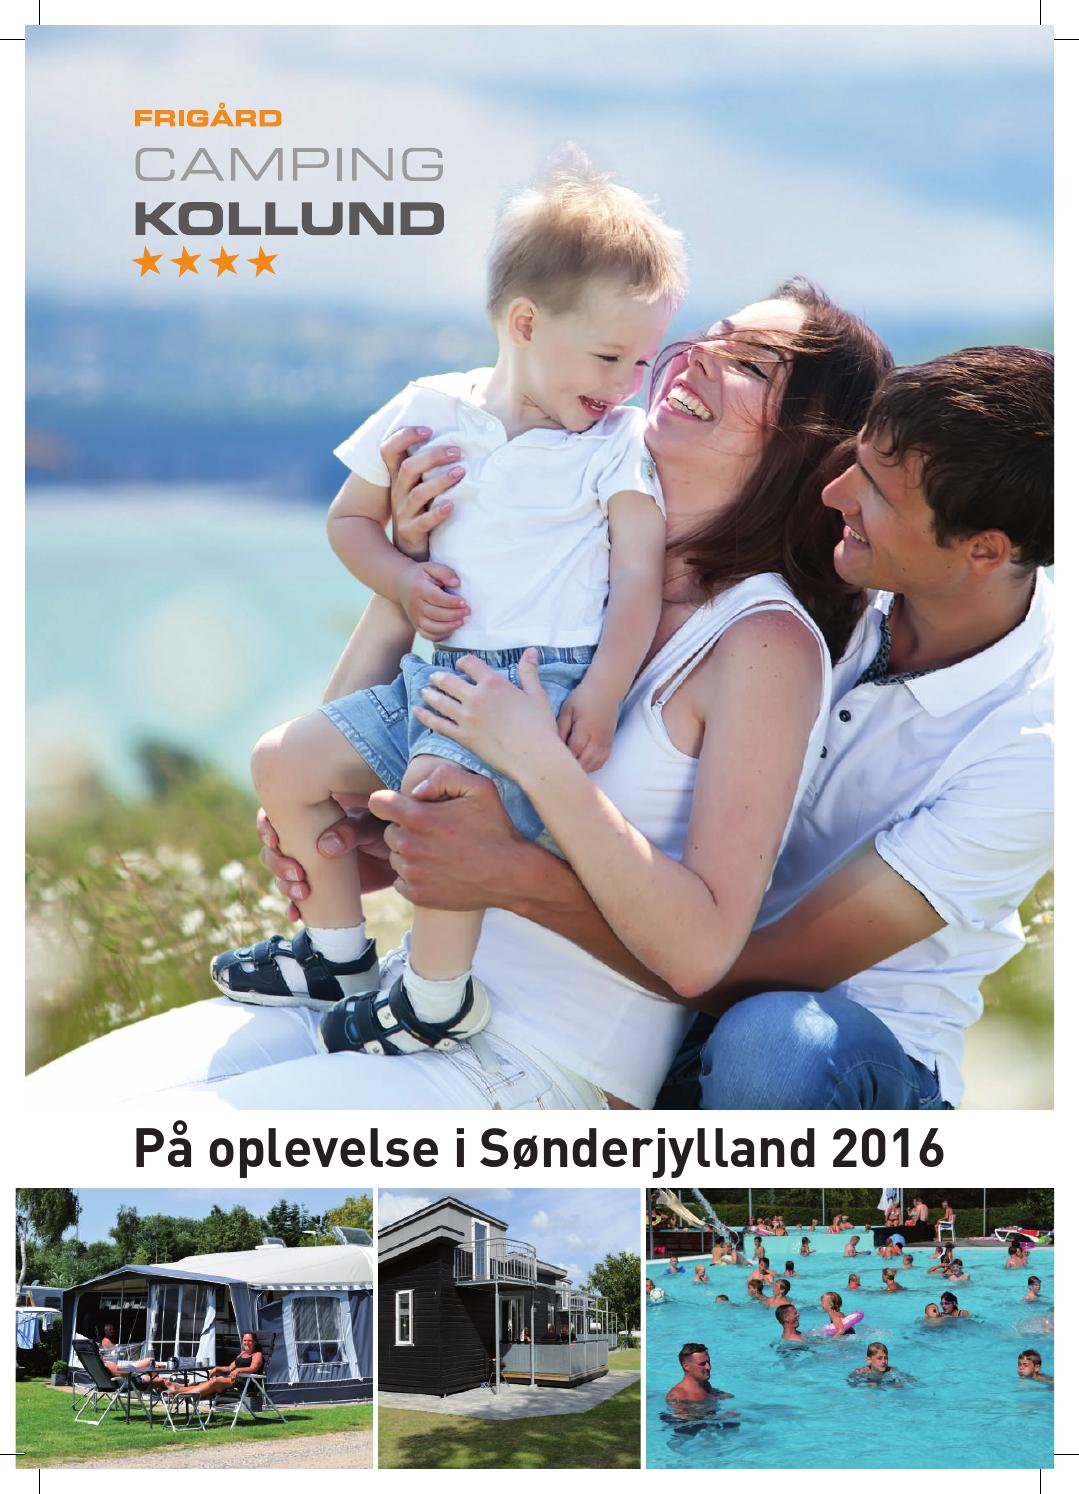 Frigard Camping Pa Oplevelse I Sonderjylland 2016 By Simon Andre